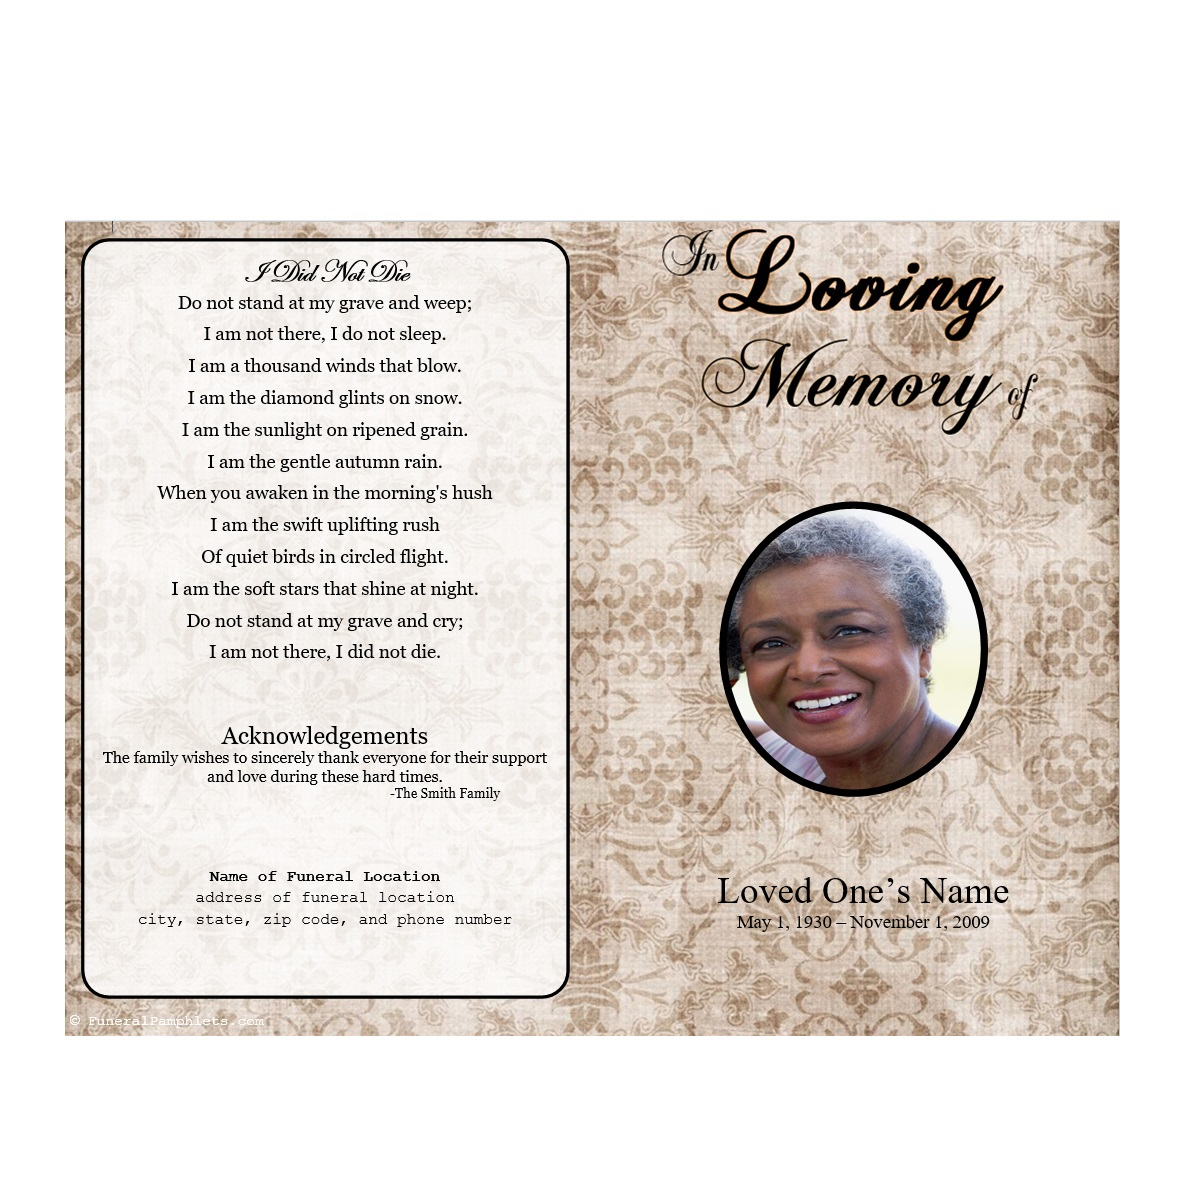 Floral designs single fold memorial program funeral for Memorial pamphlets free templates